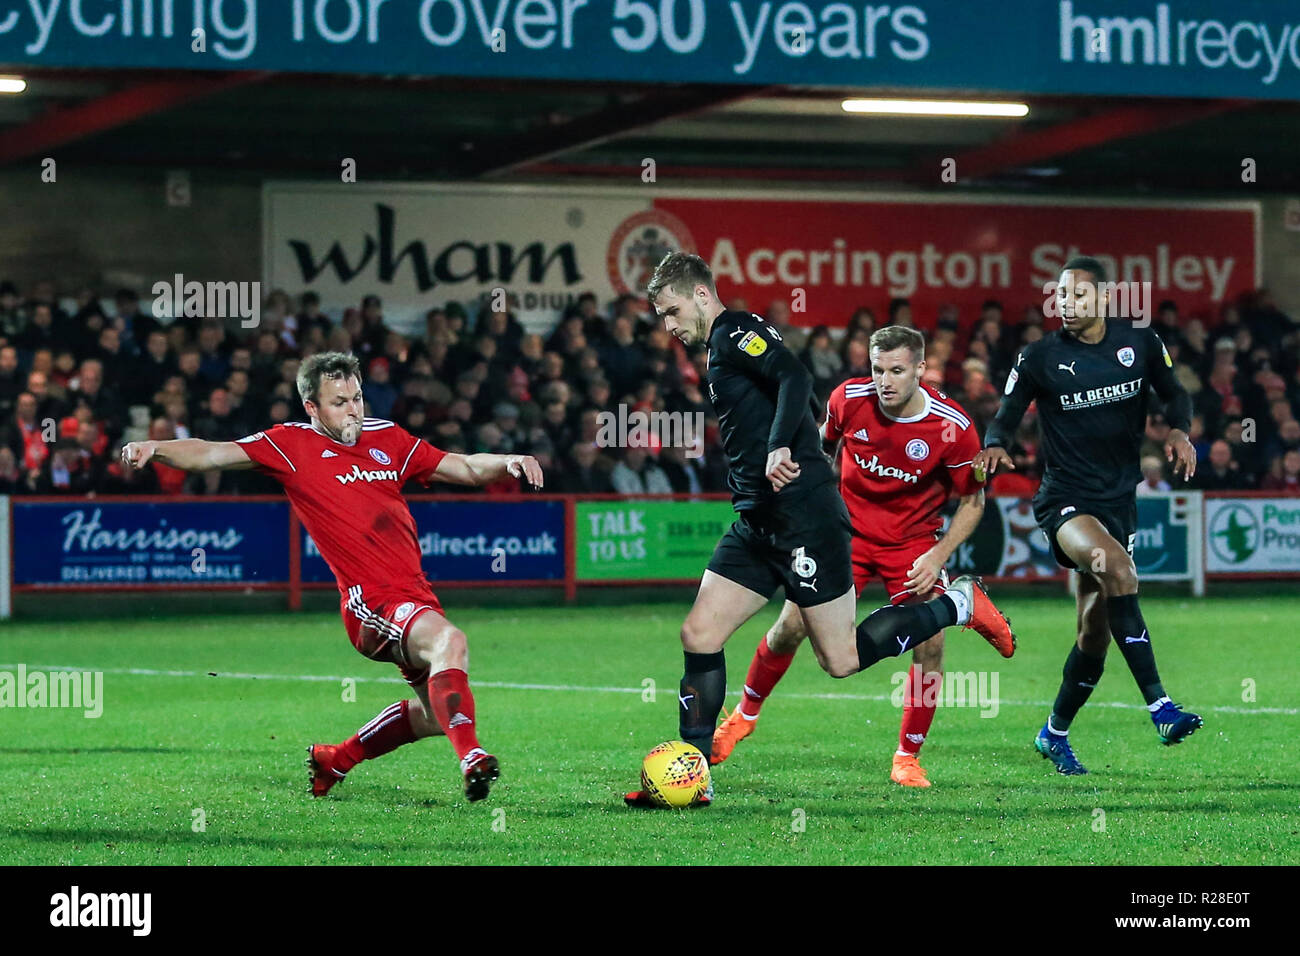 Accrington, UK. 17th November 2018, Crown Ground, Accrington, England; Sky Bet League One, Accrington Stanley v Barnsley ; Liam Lindsay (06) of Barnsley plus the ball in the box as Mark Hughes (03) of Accrington Stanley challenges   Credit: Mark Cosgrove/News Images  English Football League images are subject to DataCo Licence Credit: News Images /Alamy Live News - Stock Image